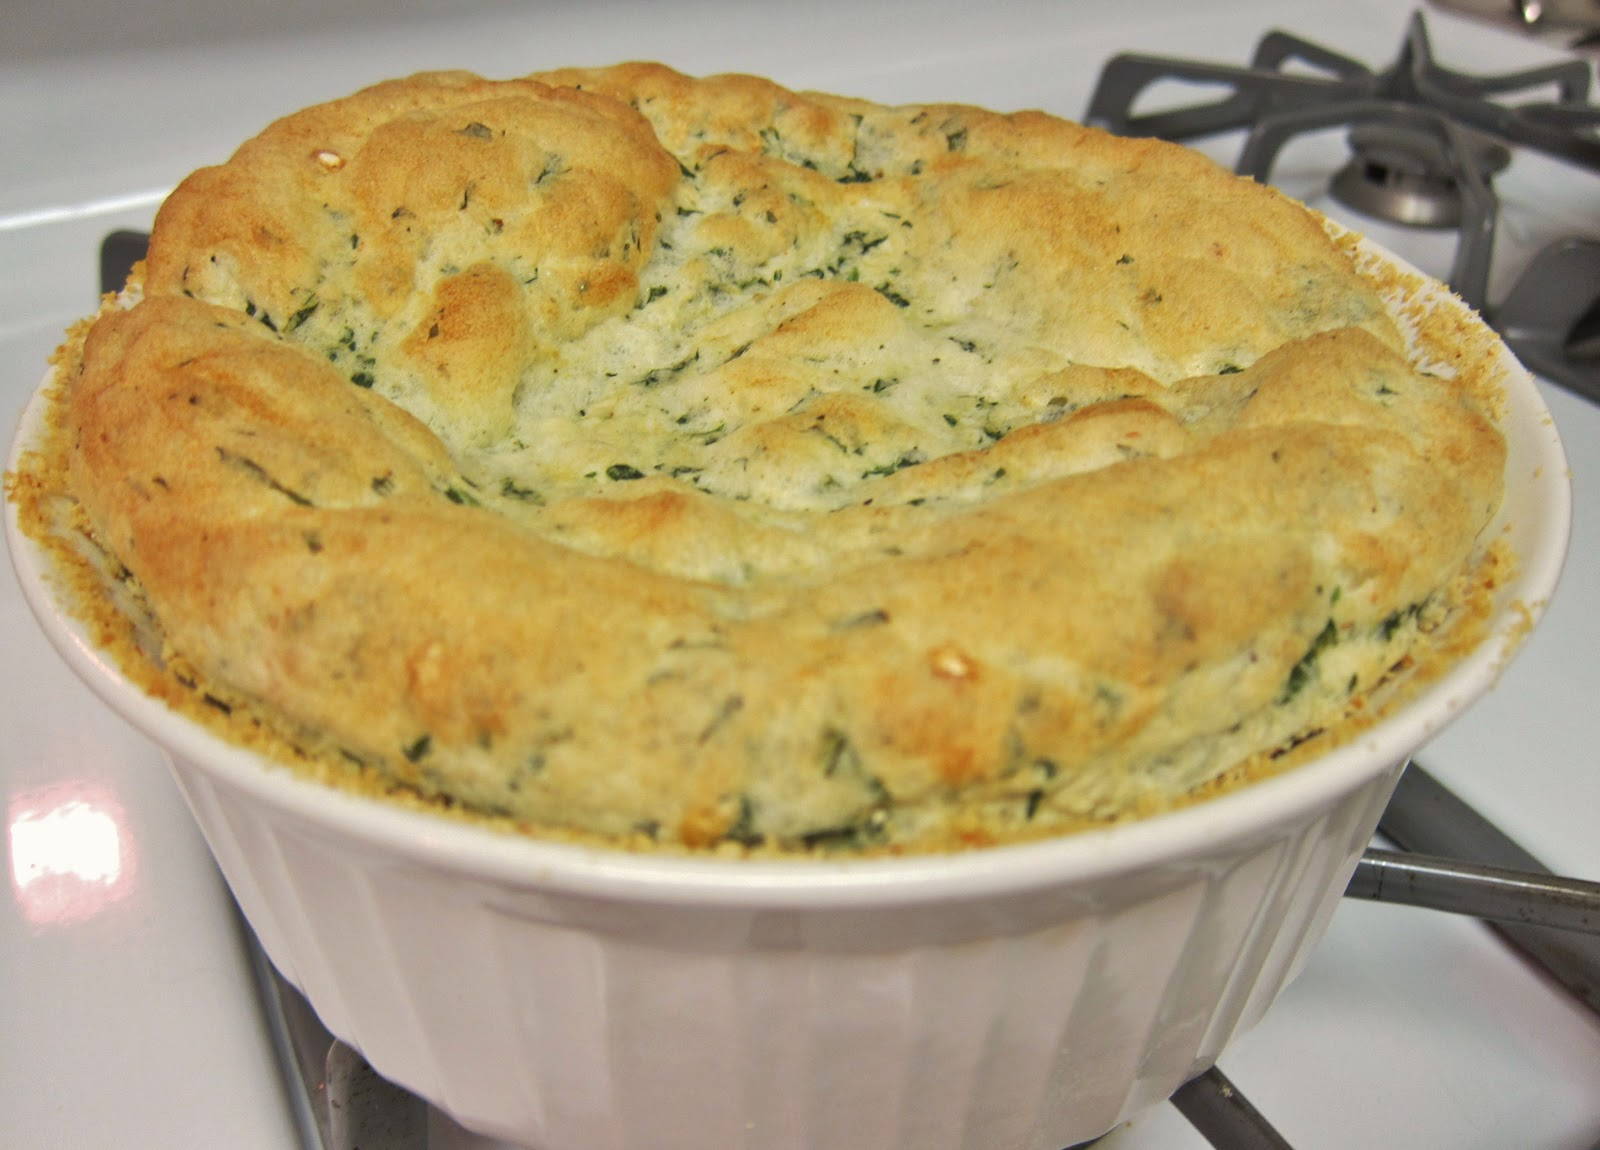 The Vegan Chronicle: Arugula and Cheese Souffle